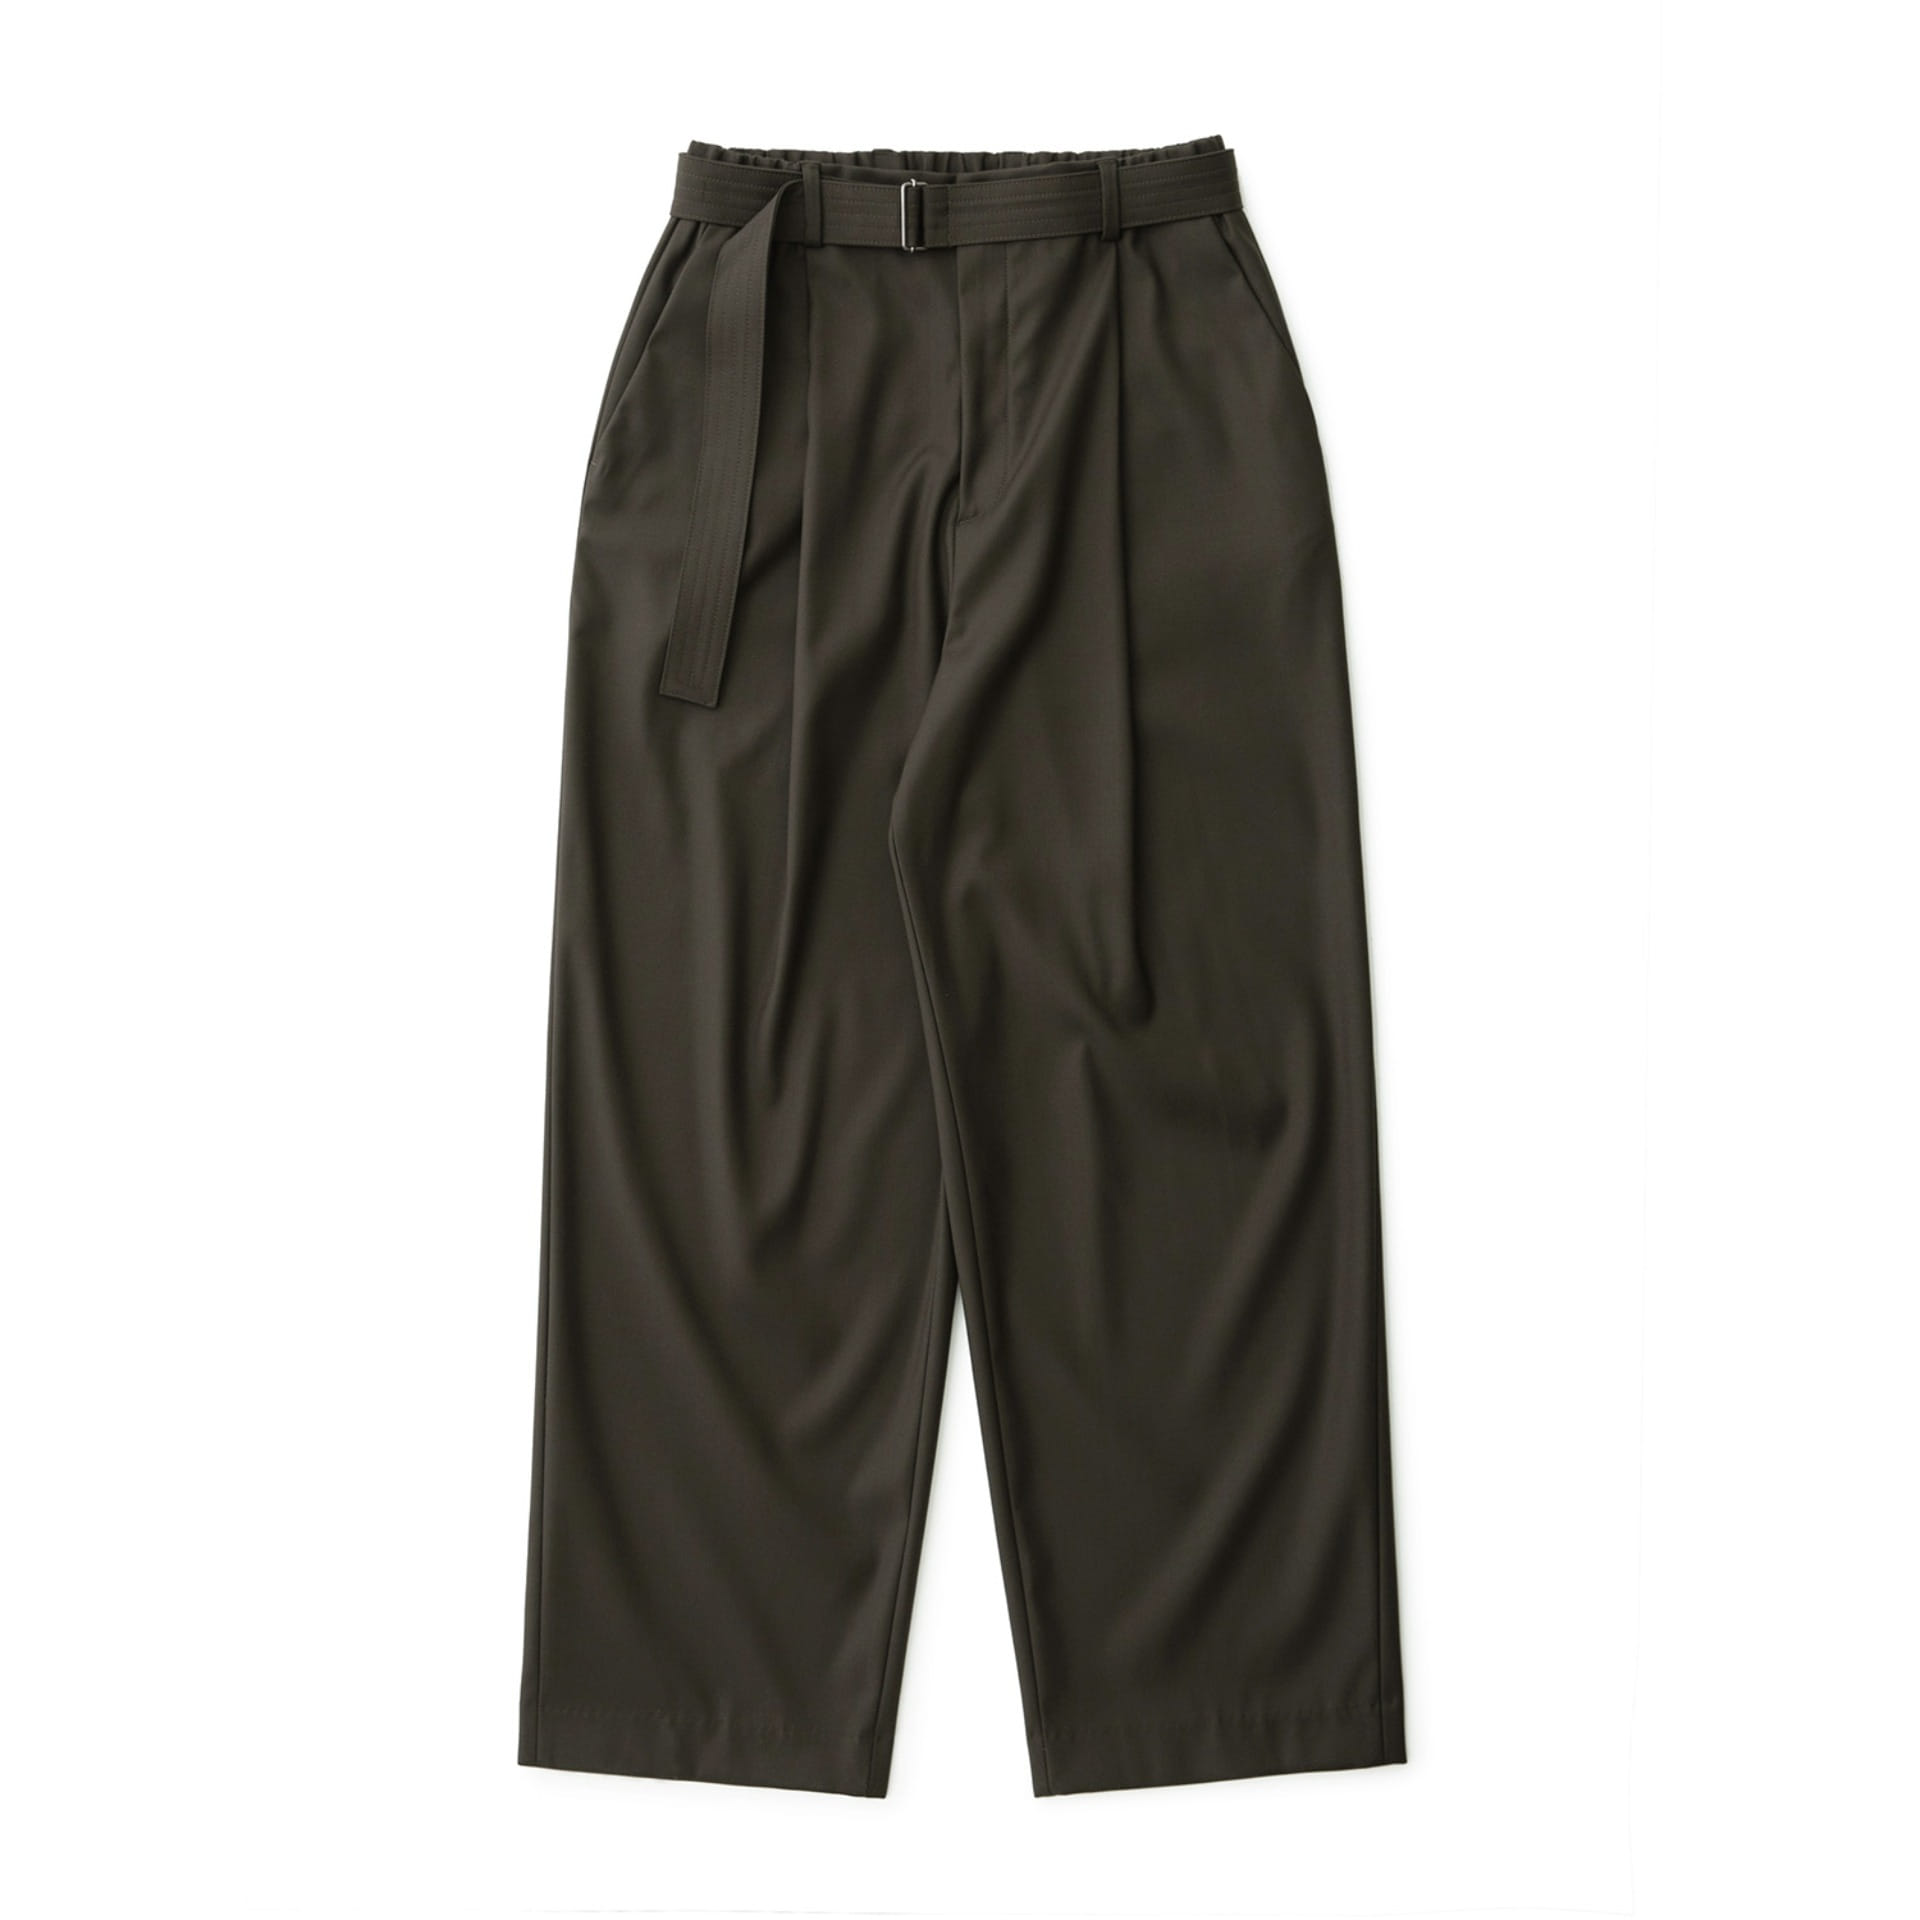 Calm Banded Pants (Olive Brown)